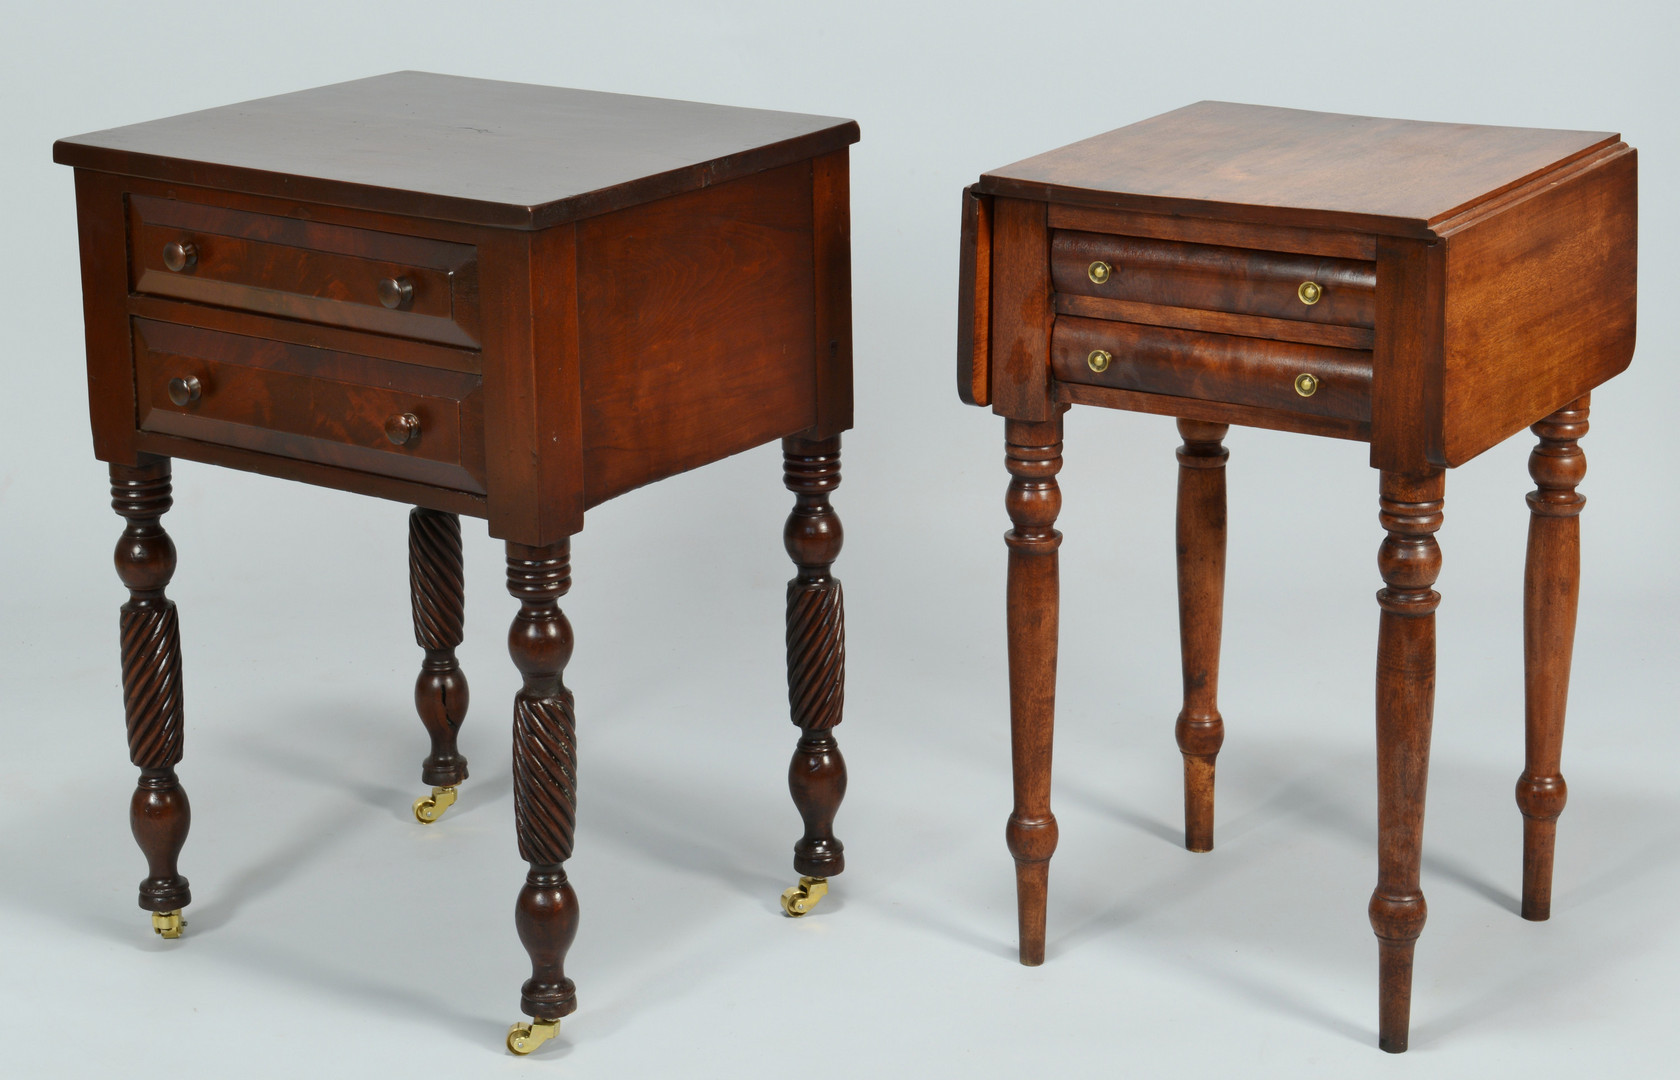 Lot 824: Pair of 2 Drawer Tables, 1 w/ Spiral Legs